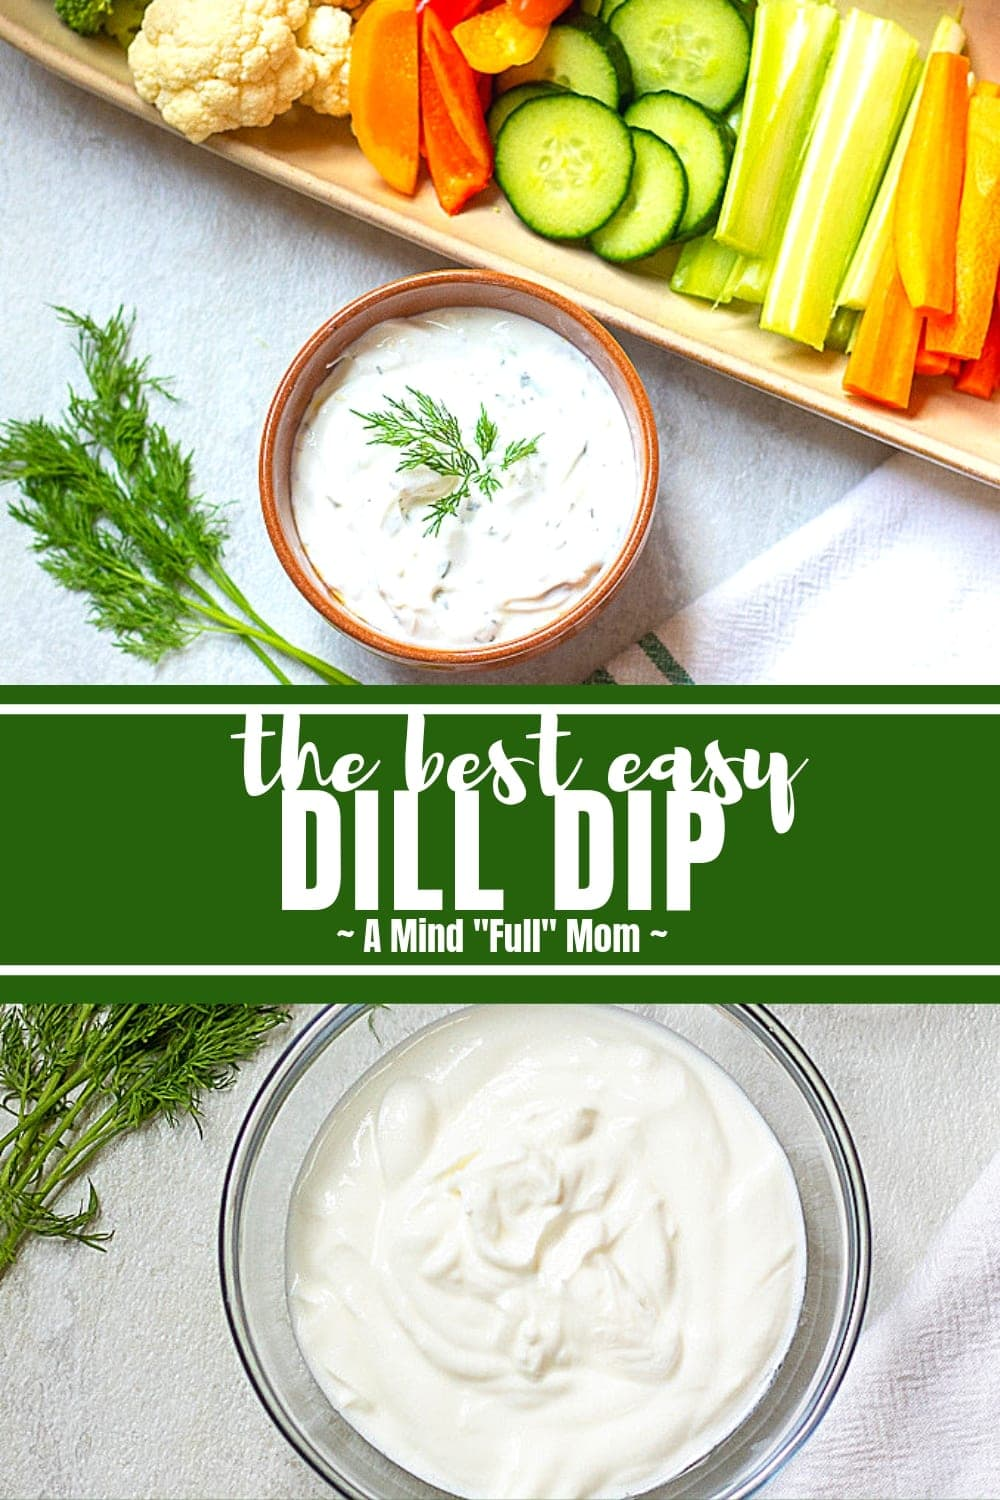 This easy dill dip comes together in less than 5 minutes and is a creamy, flavorful dip perfect for veggies, crackers, bread, chips, or as a sauce for grilled meat. This recipe for dill dip has a lightened up and decadent version perfect for anyone!